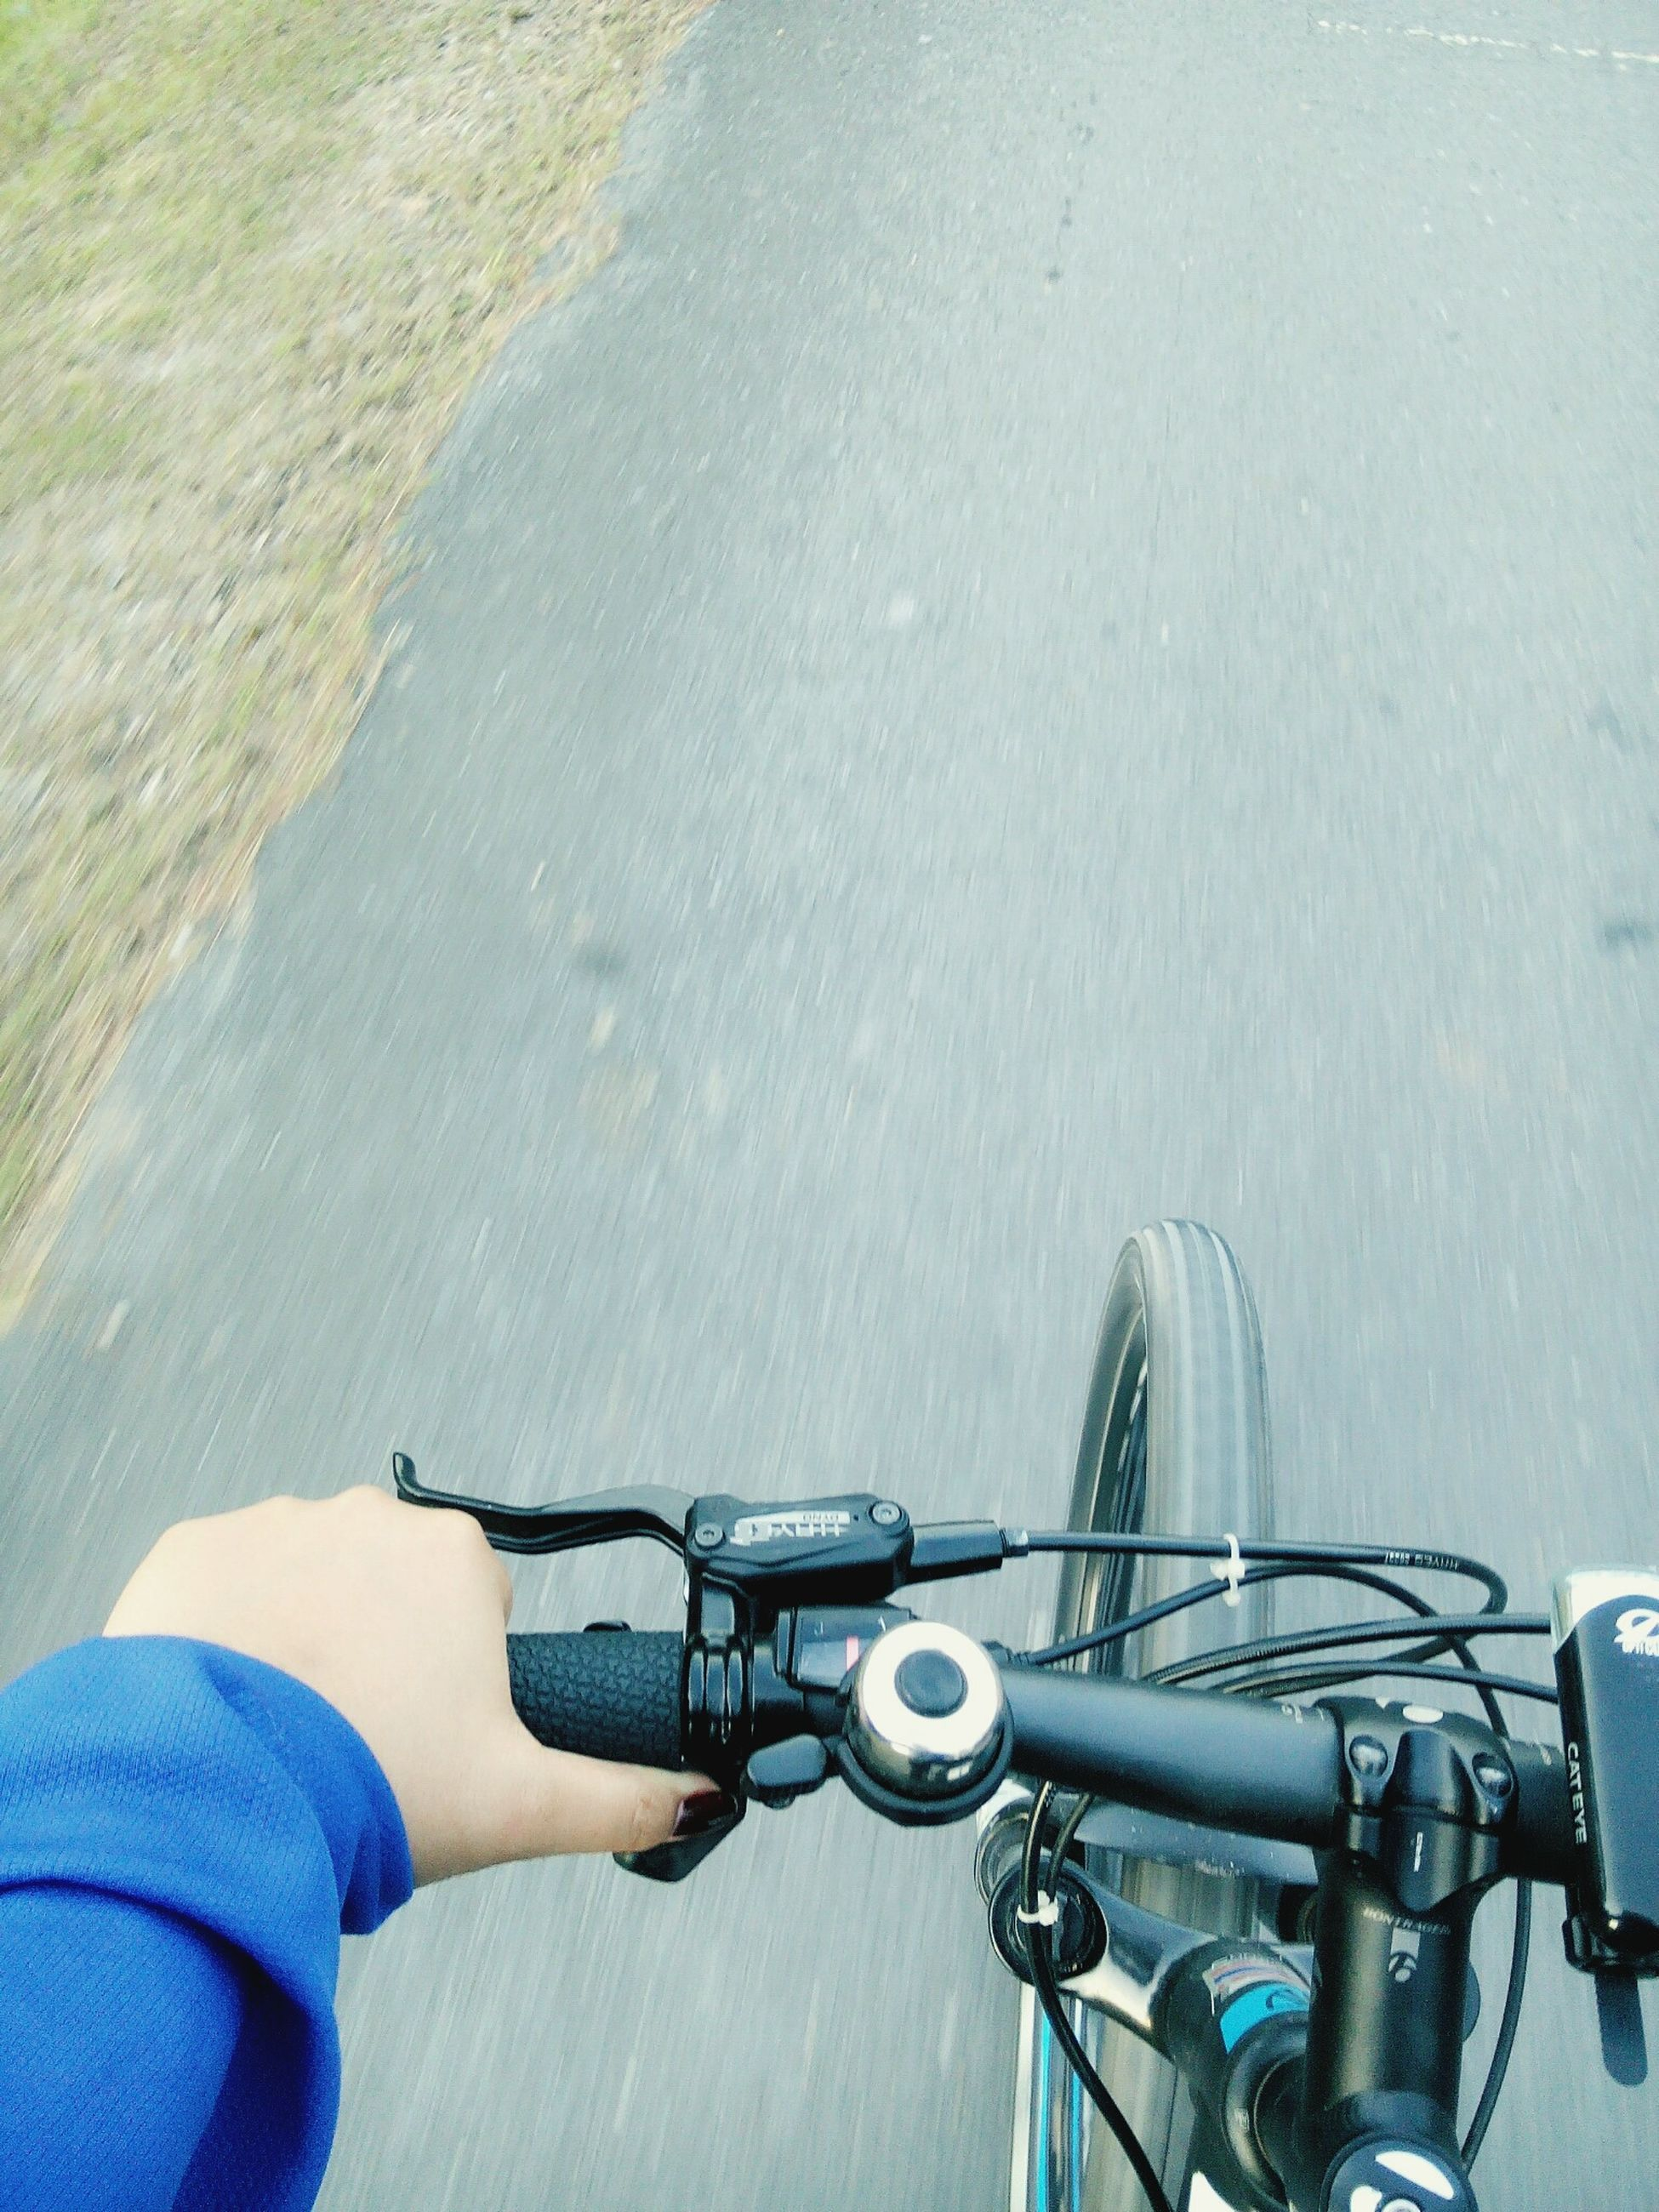 bicycle, transportation, land vehicle, mode of transport, men, riding, lifestyles, part of, leisure activity, stationary, personal perspective, travel, street, cropped, cycling, low section, parked